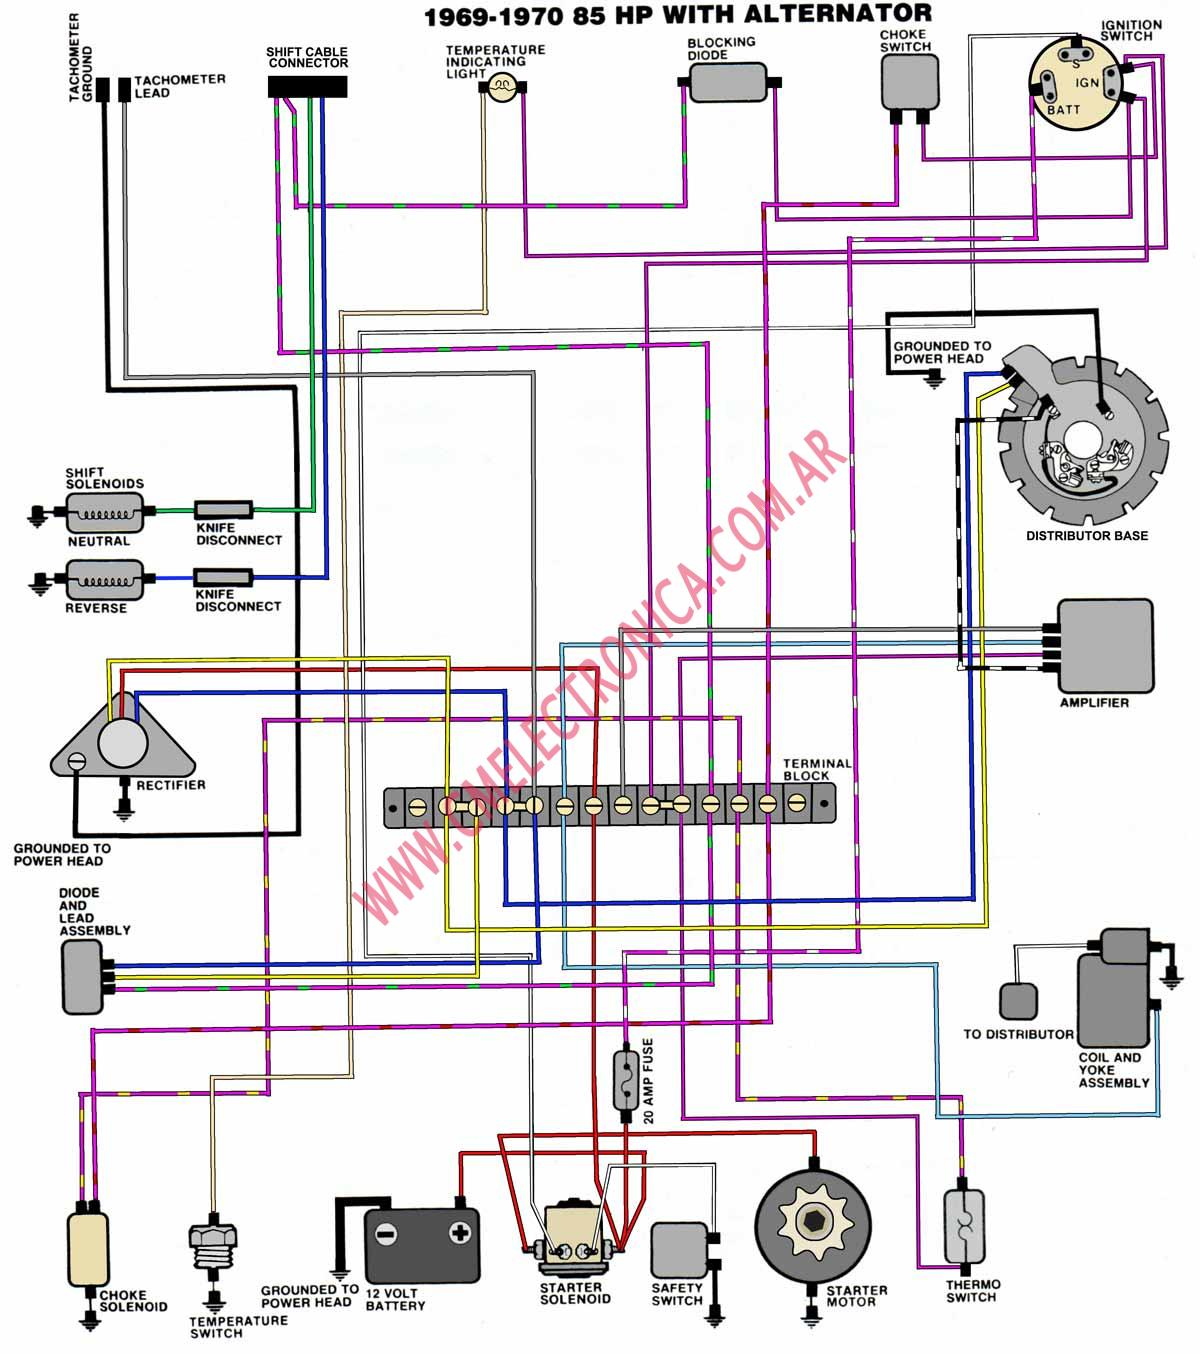 evinrude_johnson 69_70_v4 yamaha outboard wiring harness for trim gauge yamaha outboard Yamaha Outboard Schematic Diagram at pacquiaovsvargaslive.co